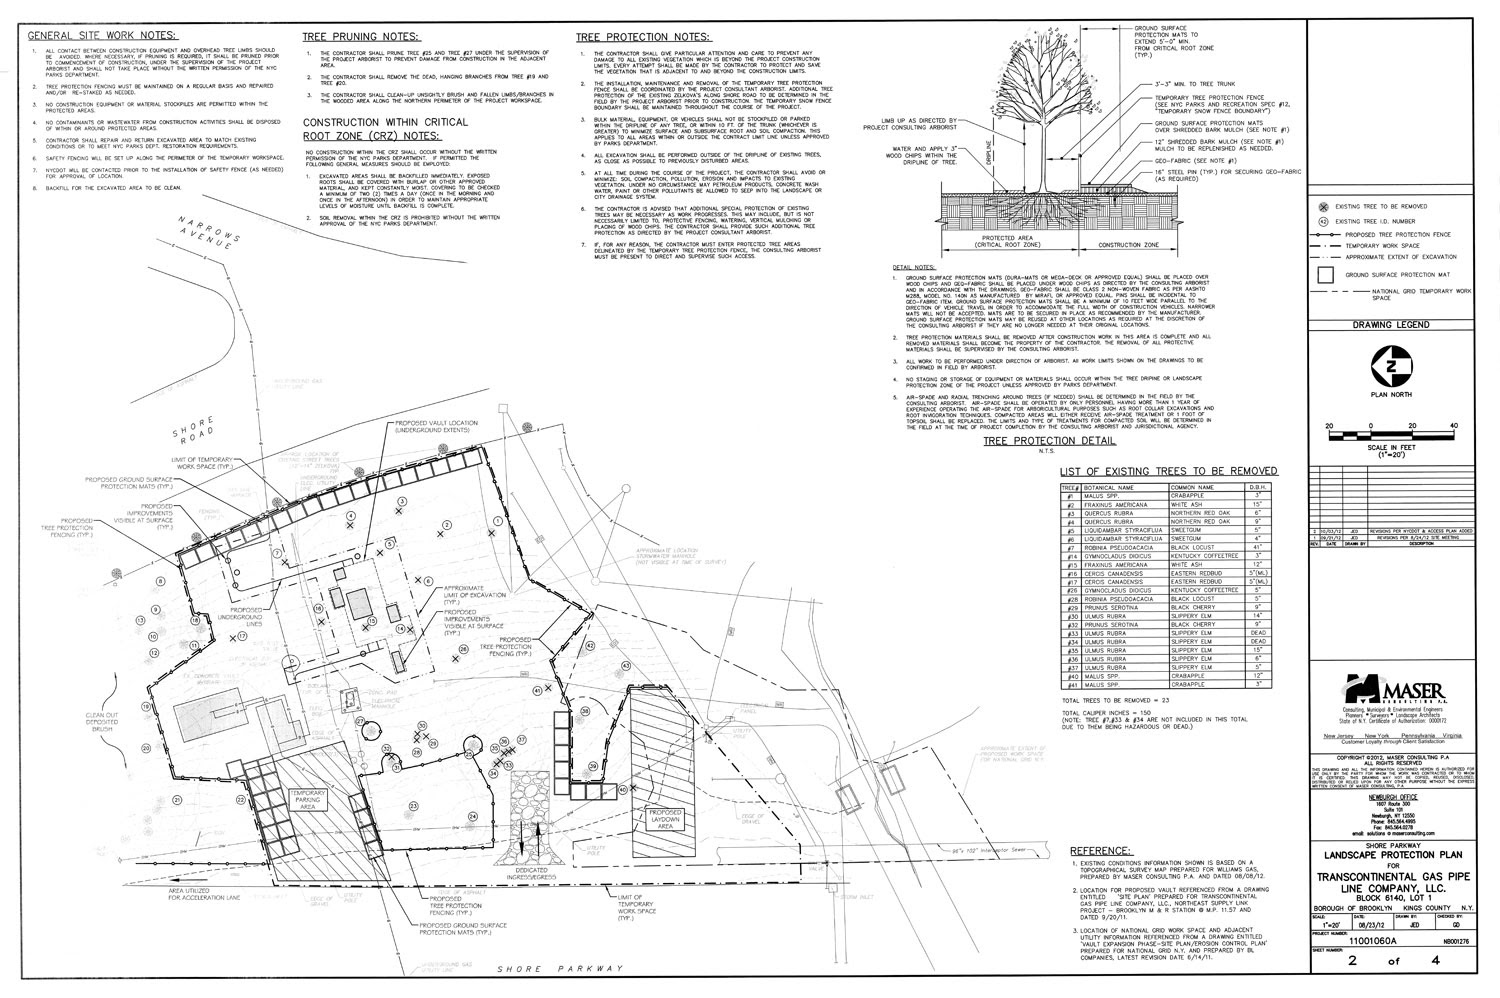 39 LETTER OF APPROVAL FOR WORK PROJECT SAMPLE, WORK